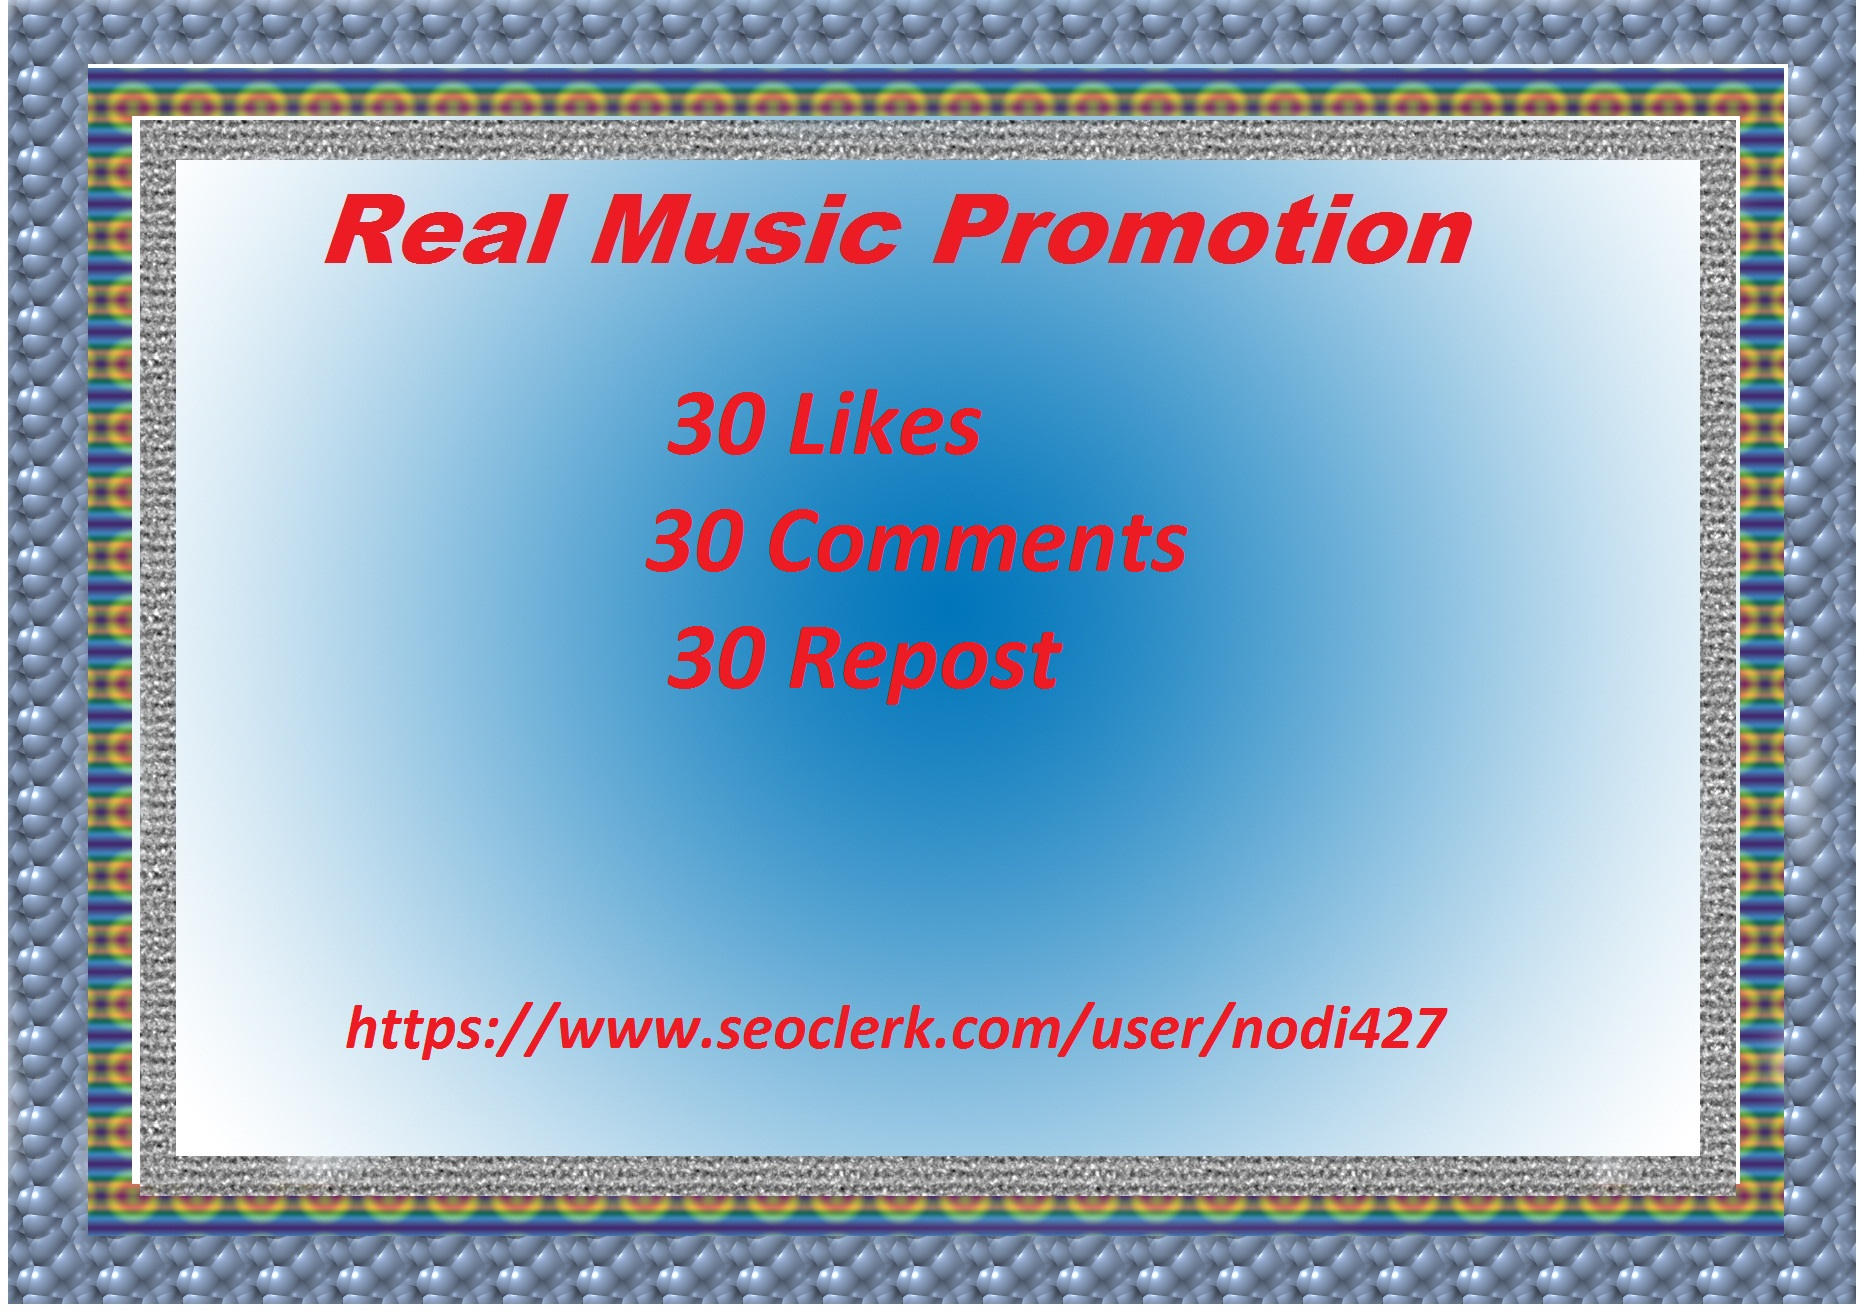 Music promotion 30 like + 30 comments + 30 repost